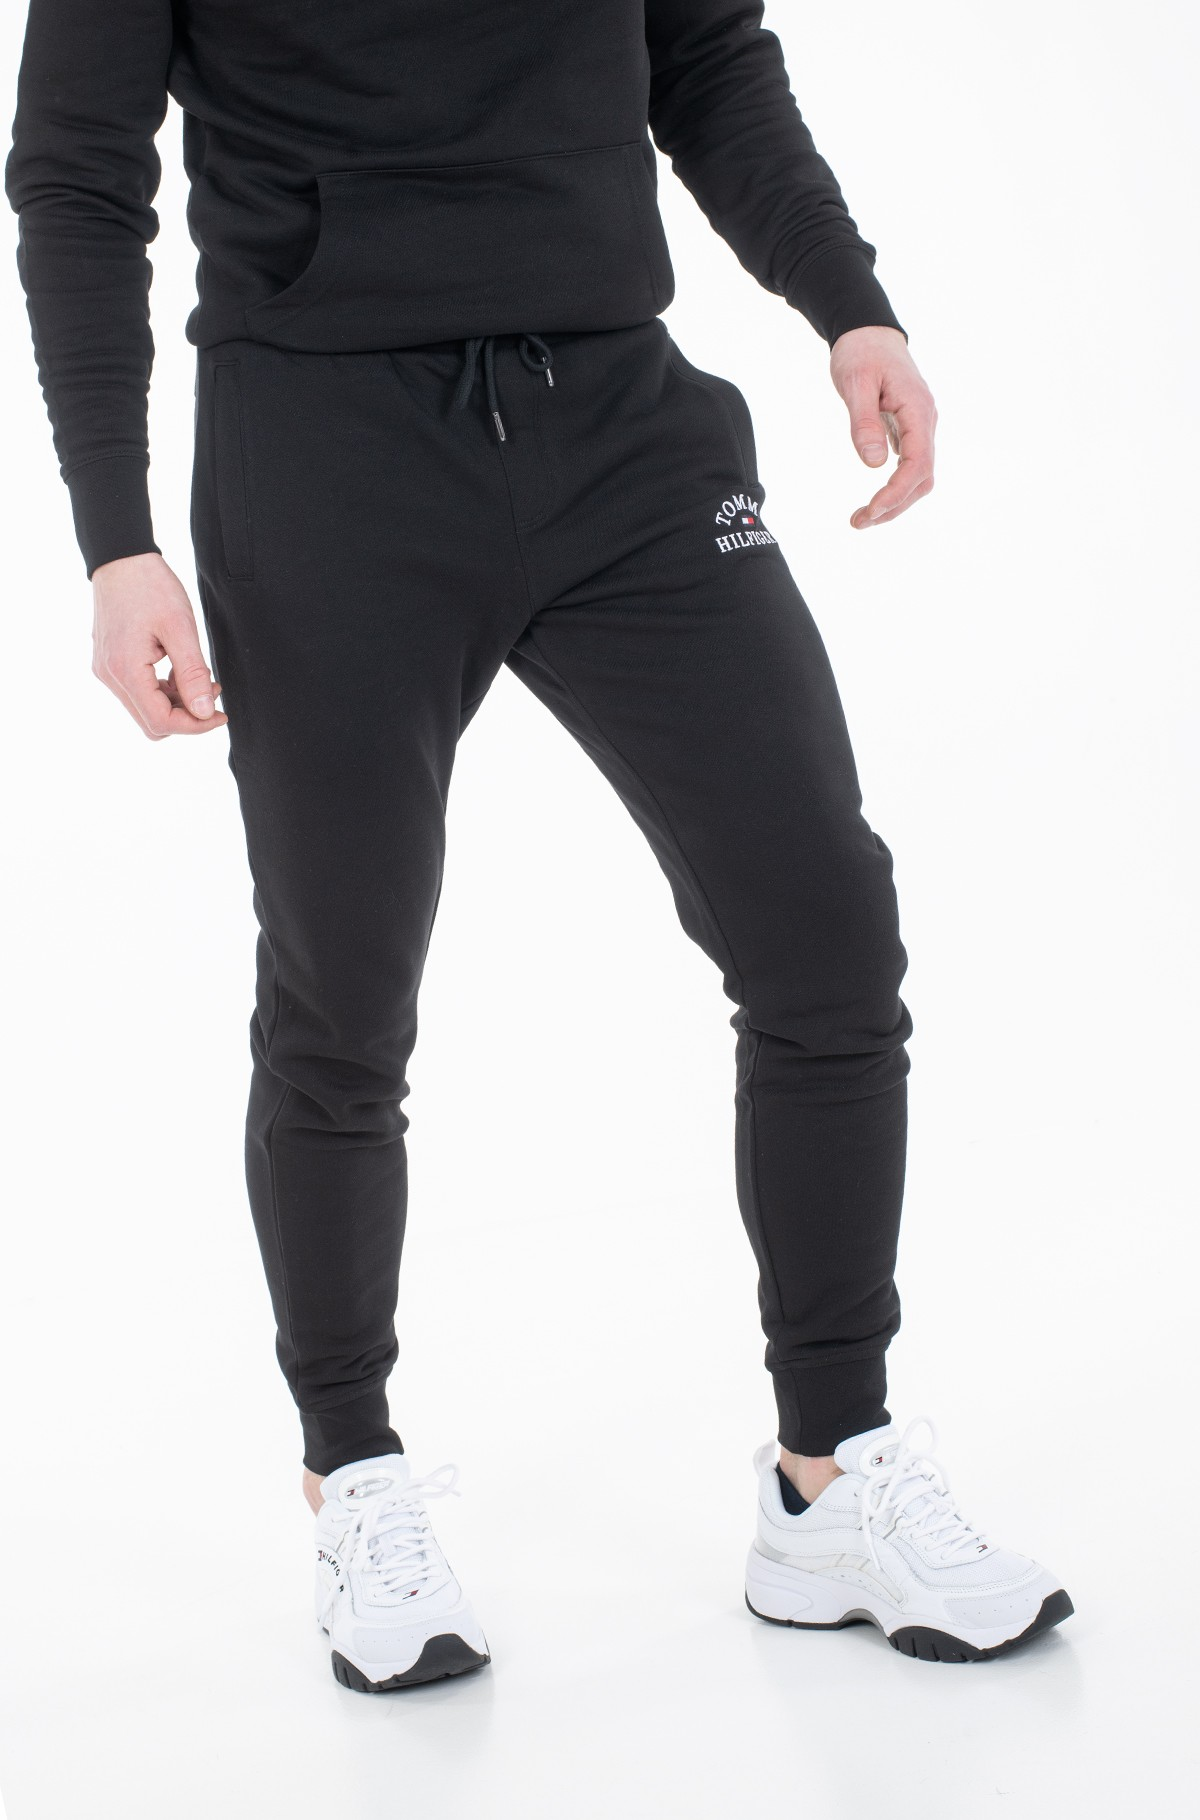 Sportinės kelnės BASIC EMBROIDERED SWEATPANTS-full-1